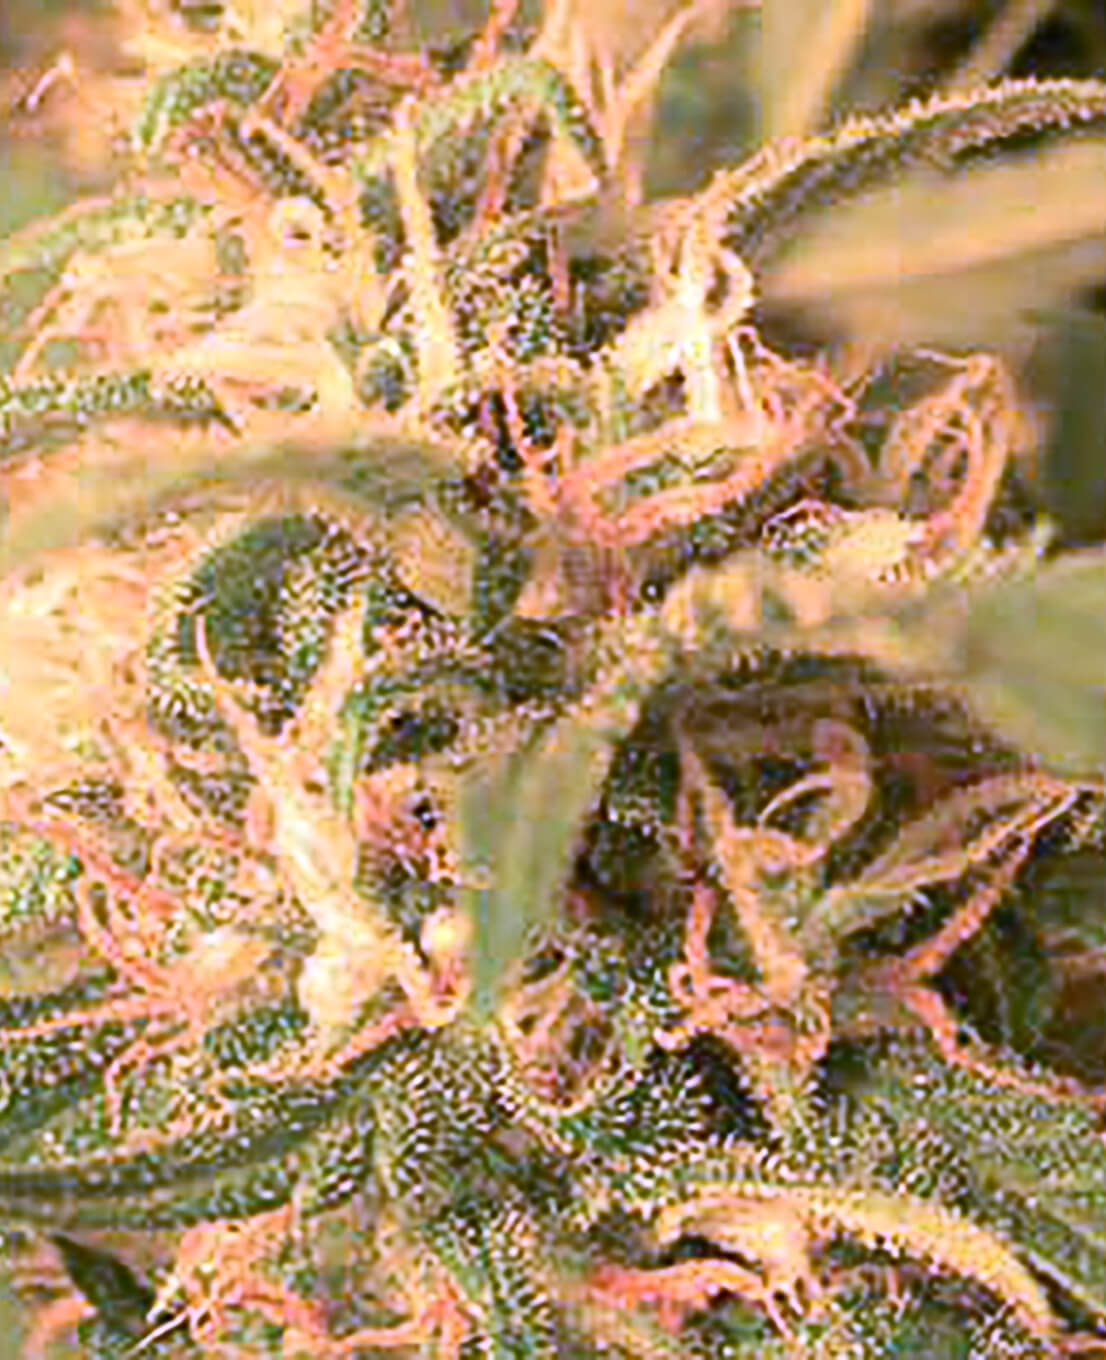 Buy Northern Lights Feminized Seeds online